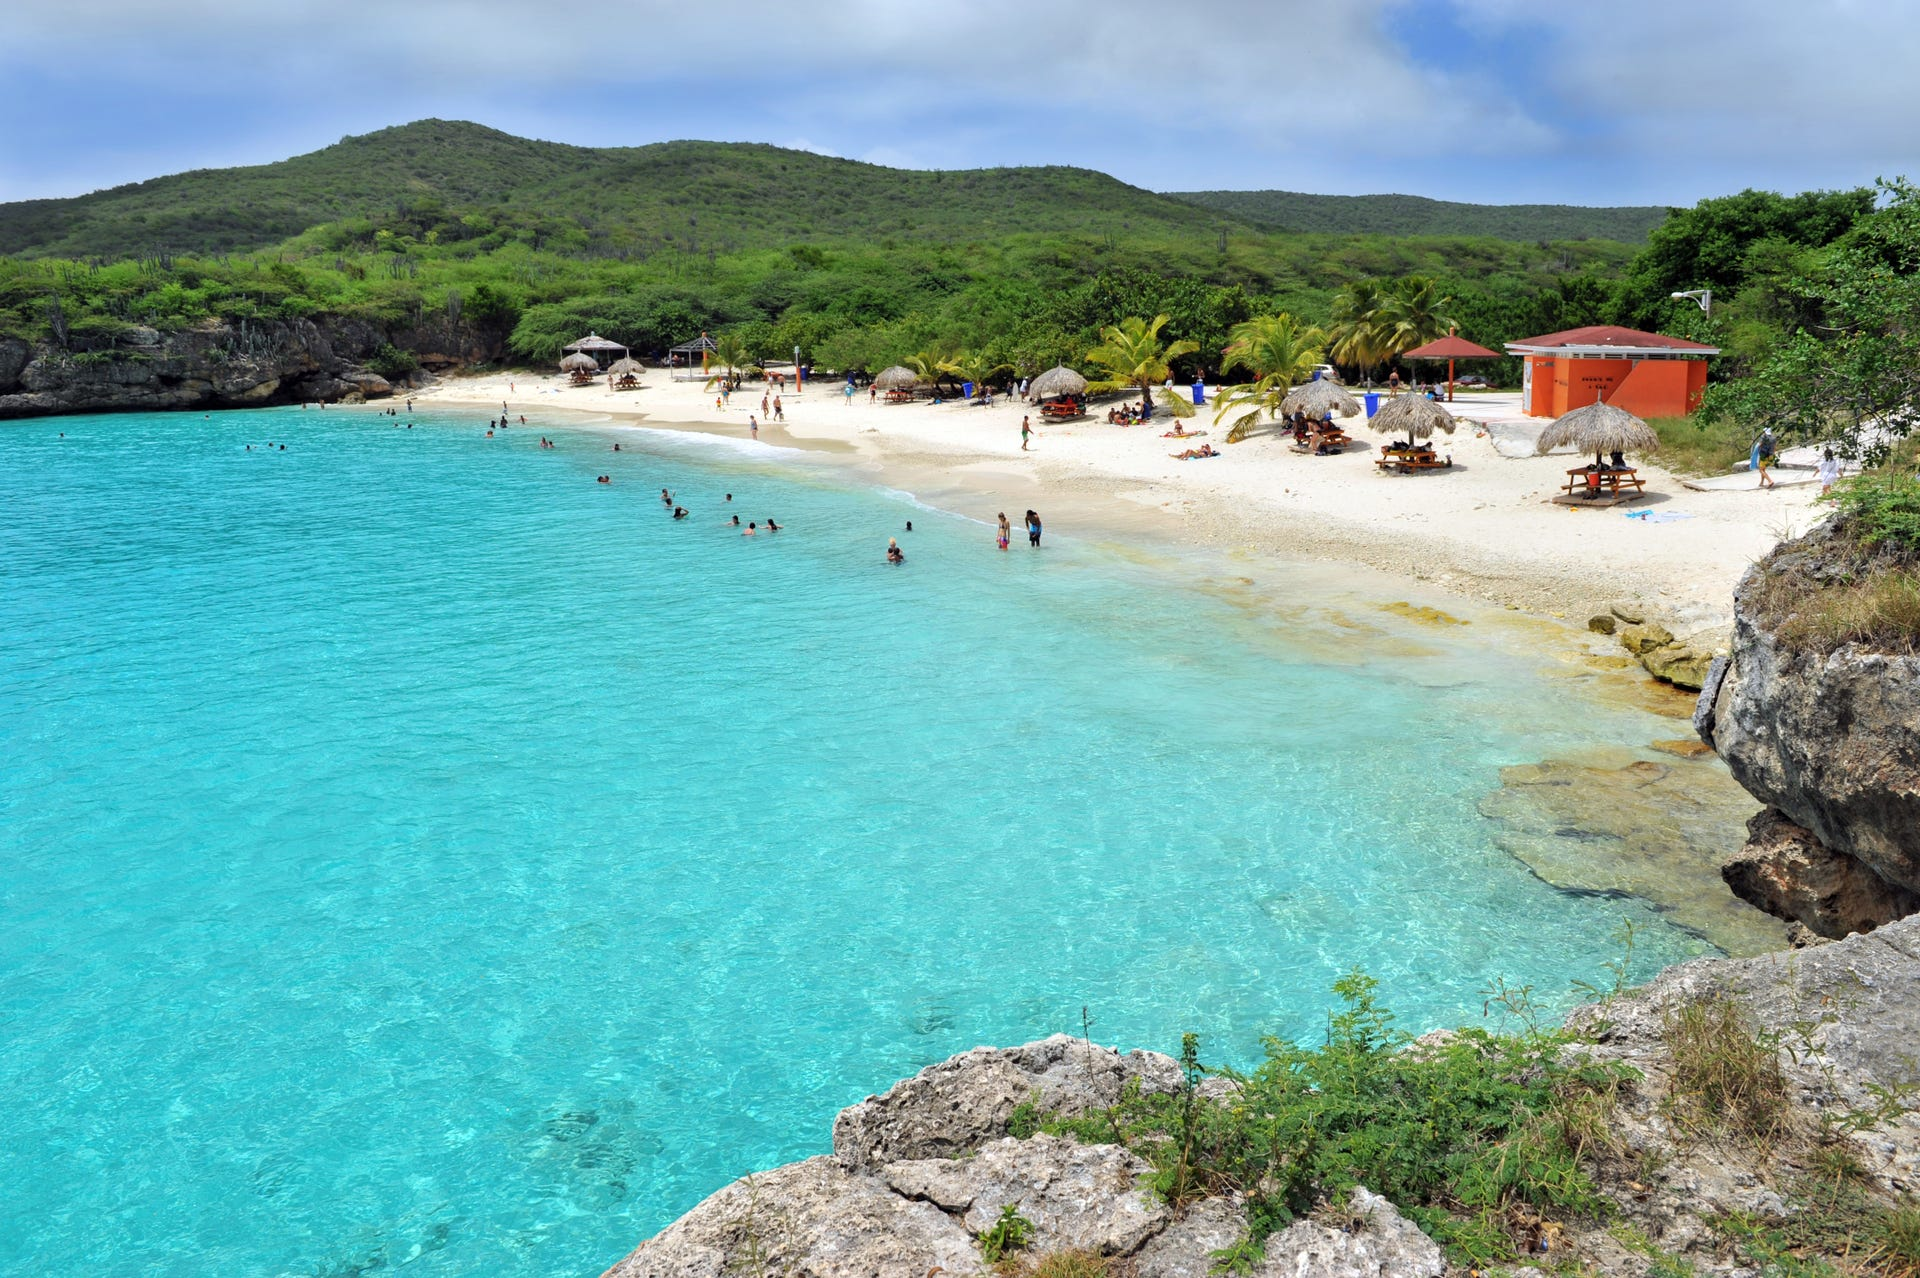 Playa Kenepa, on the west side of Curacao, is really two beaches rolled into one. The bigger beach, known as Grote Knip, is carpeted in white sand while the smaller, more intimate beach called Klein Knip is favored for the snorkeling hot spots close to the coastline.